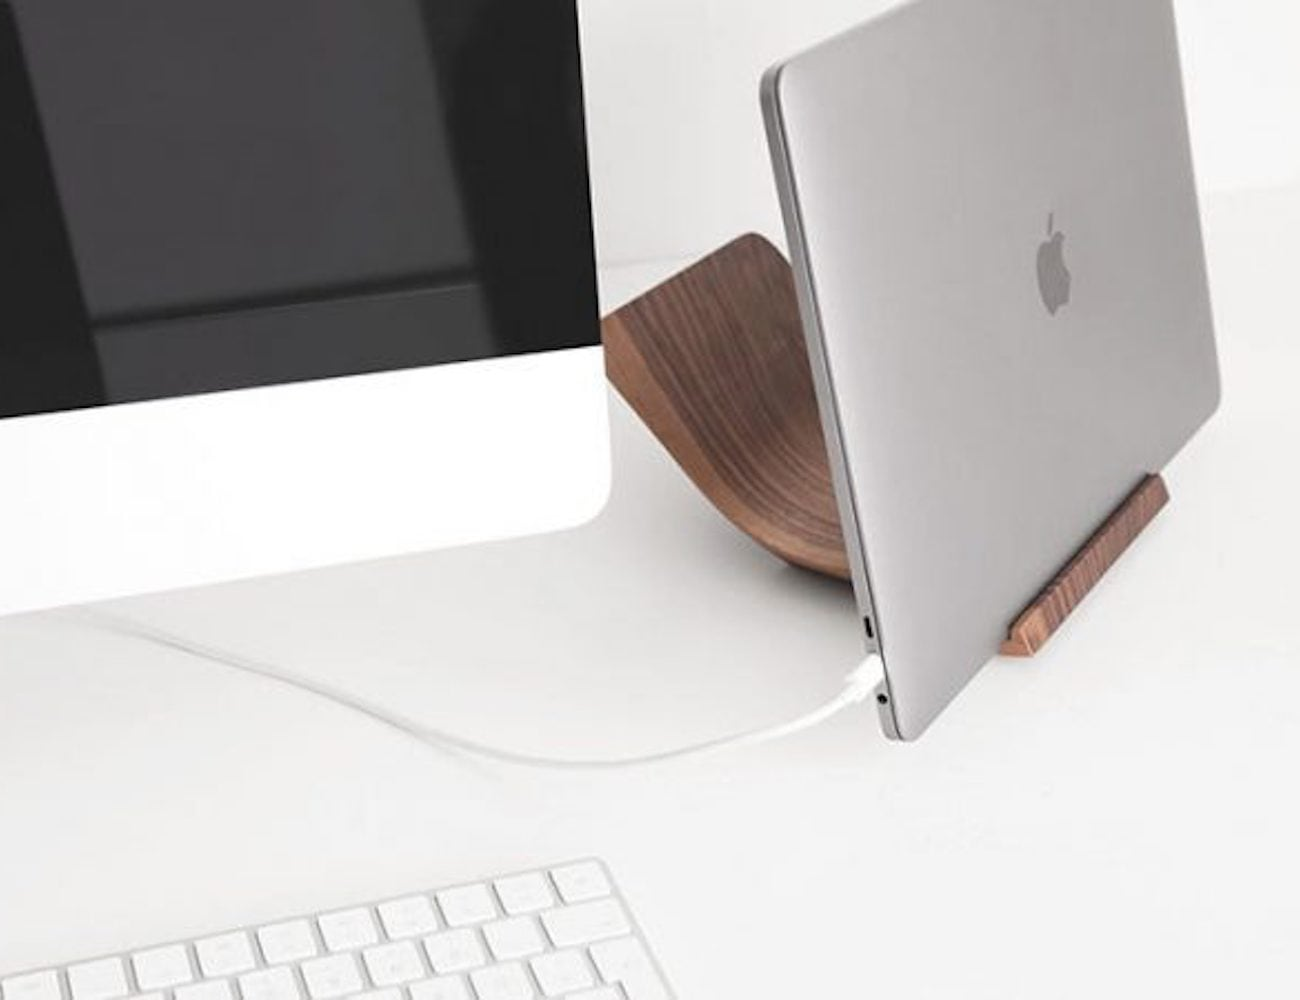 Yohann Wooden MacBook Pro and MacBook Stand